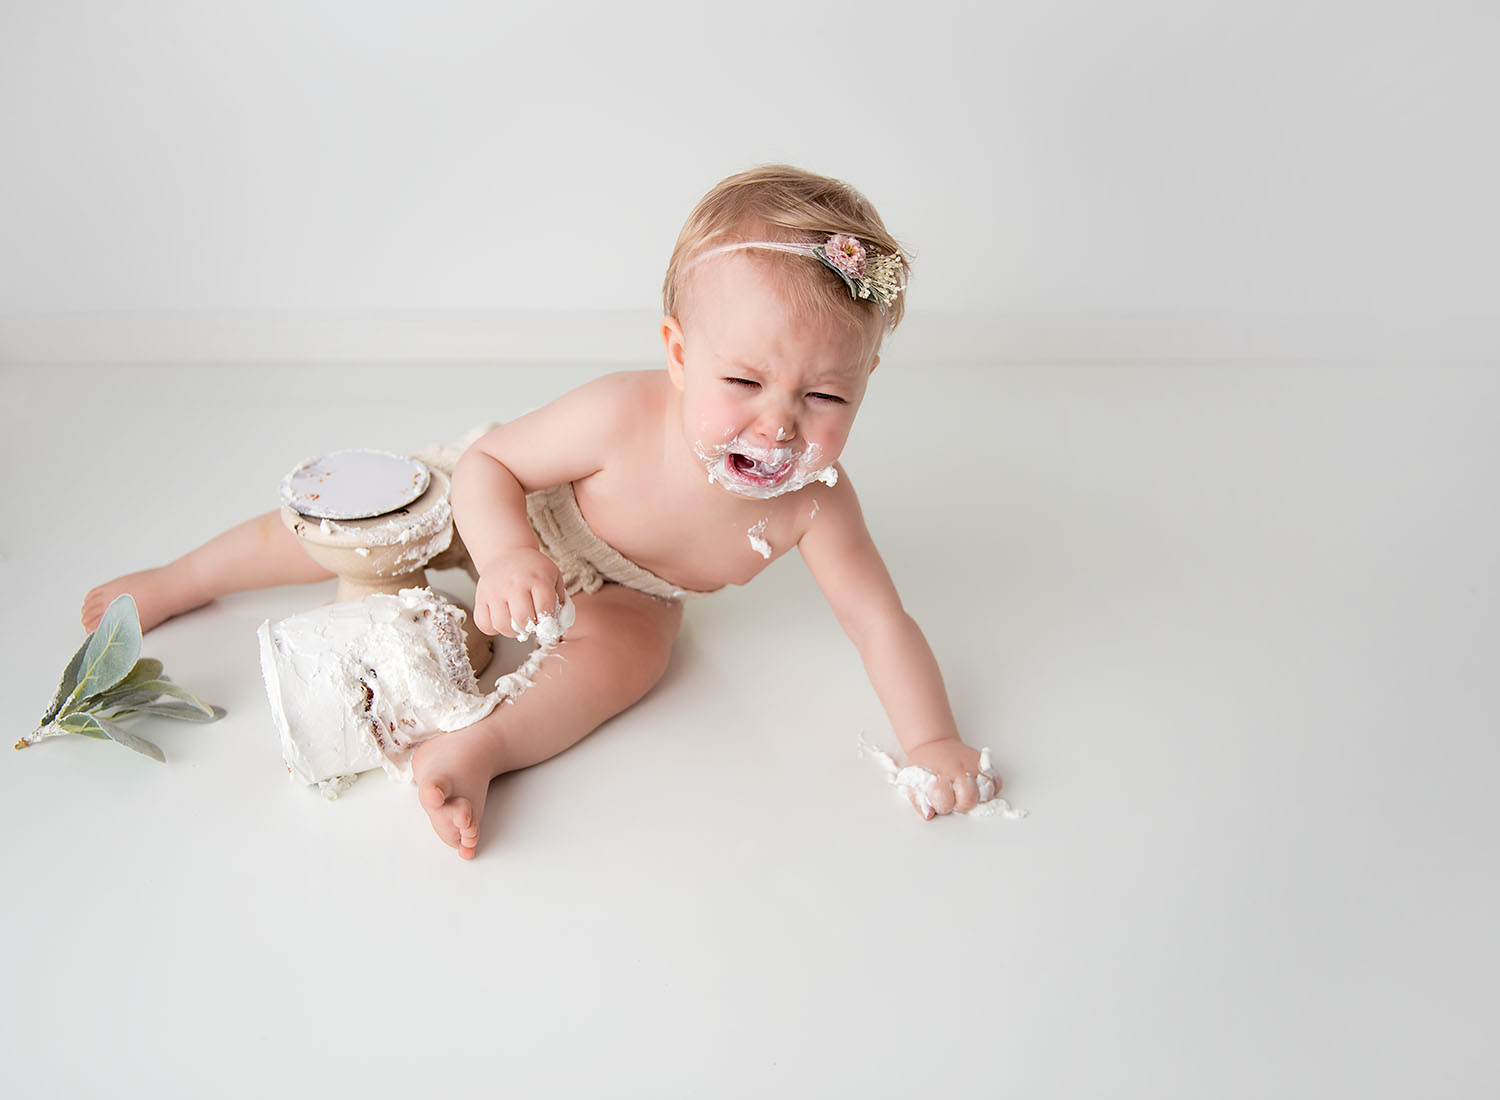 child-children-baby-photographer-photos-savannah-richmond-hill-baby-photos-ga9.jpg